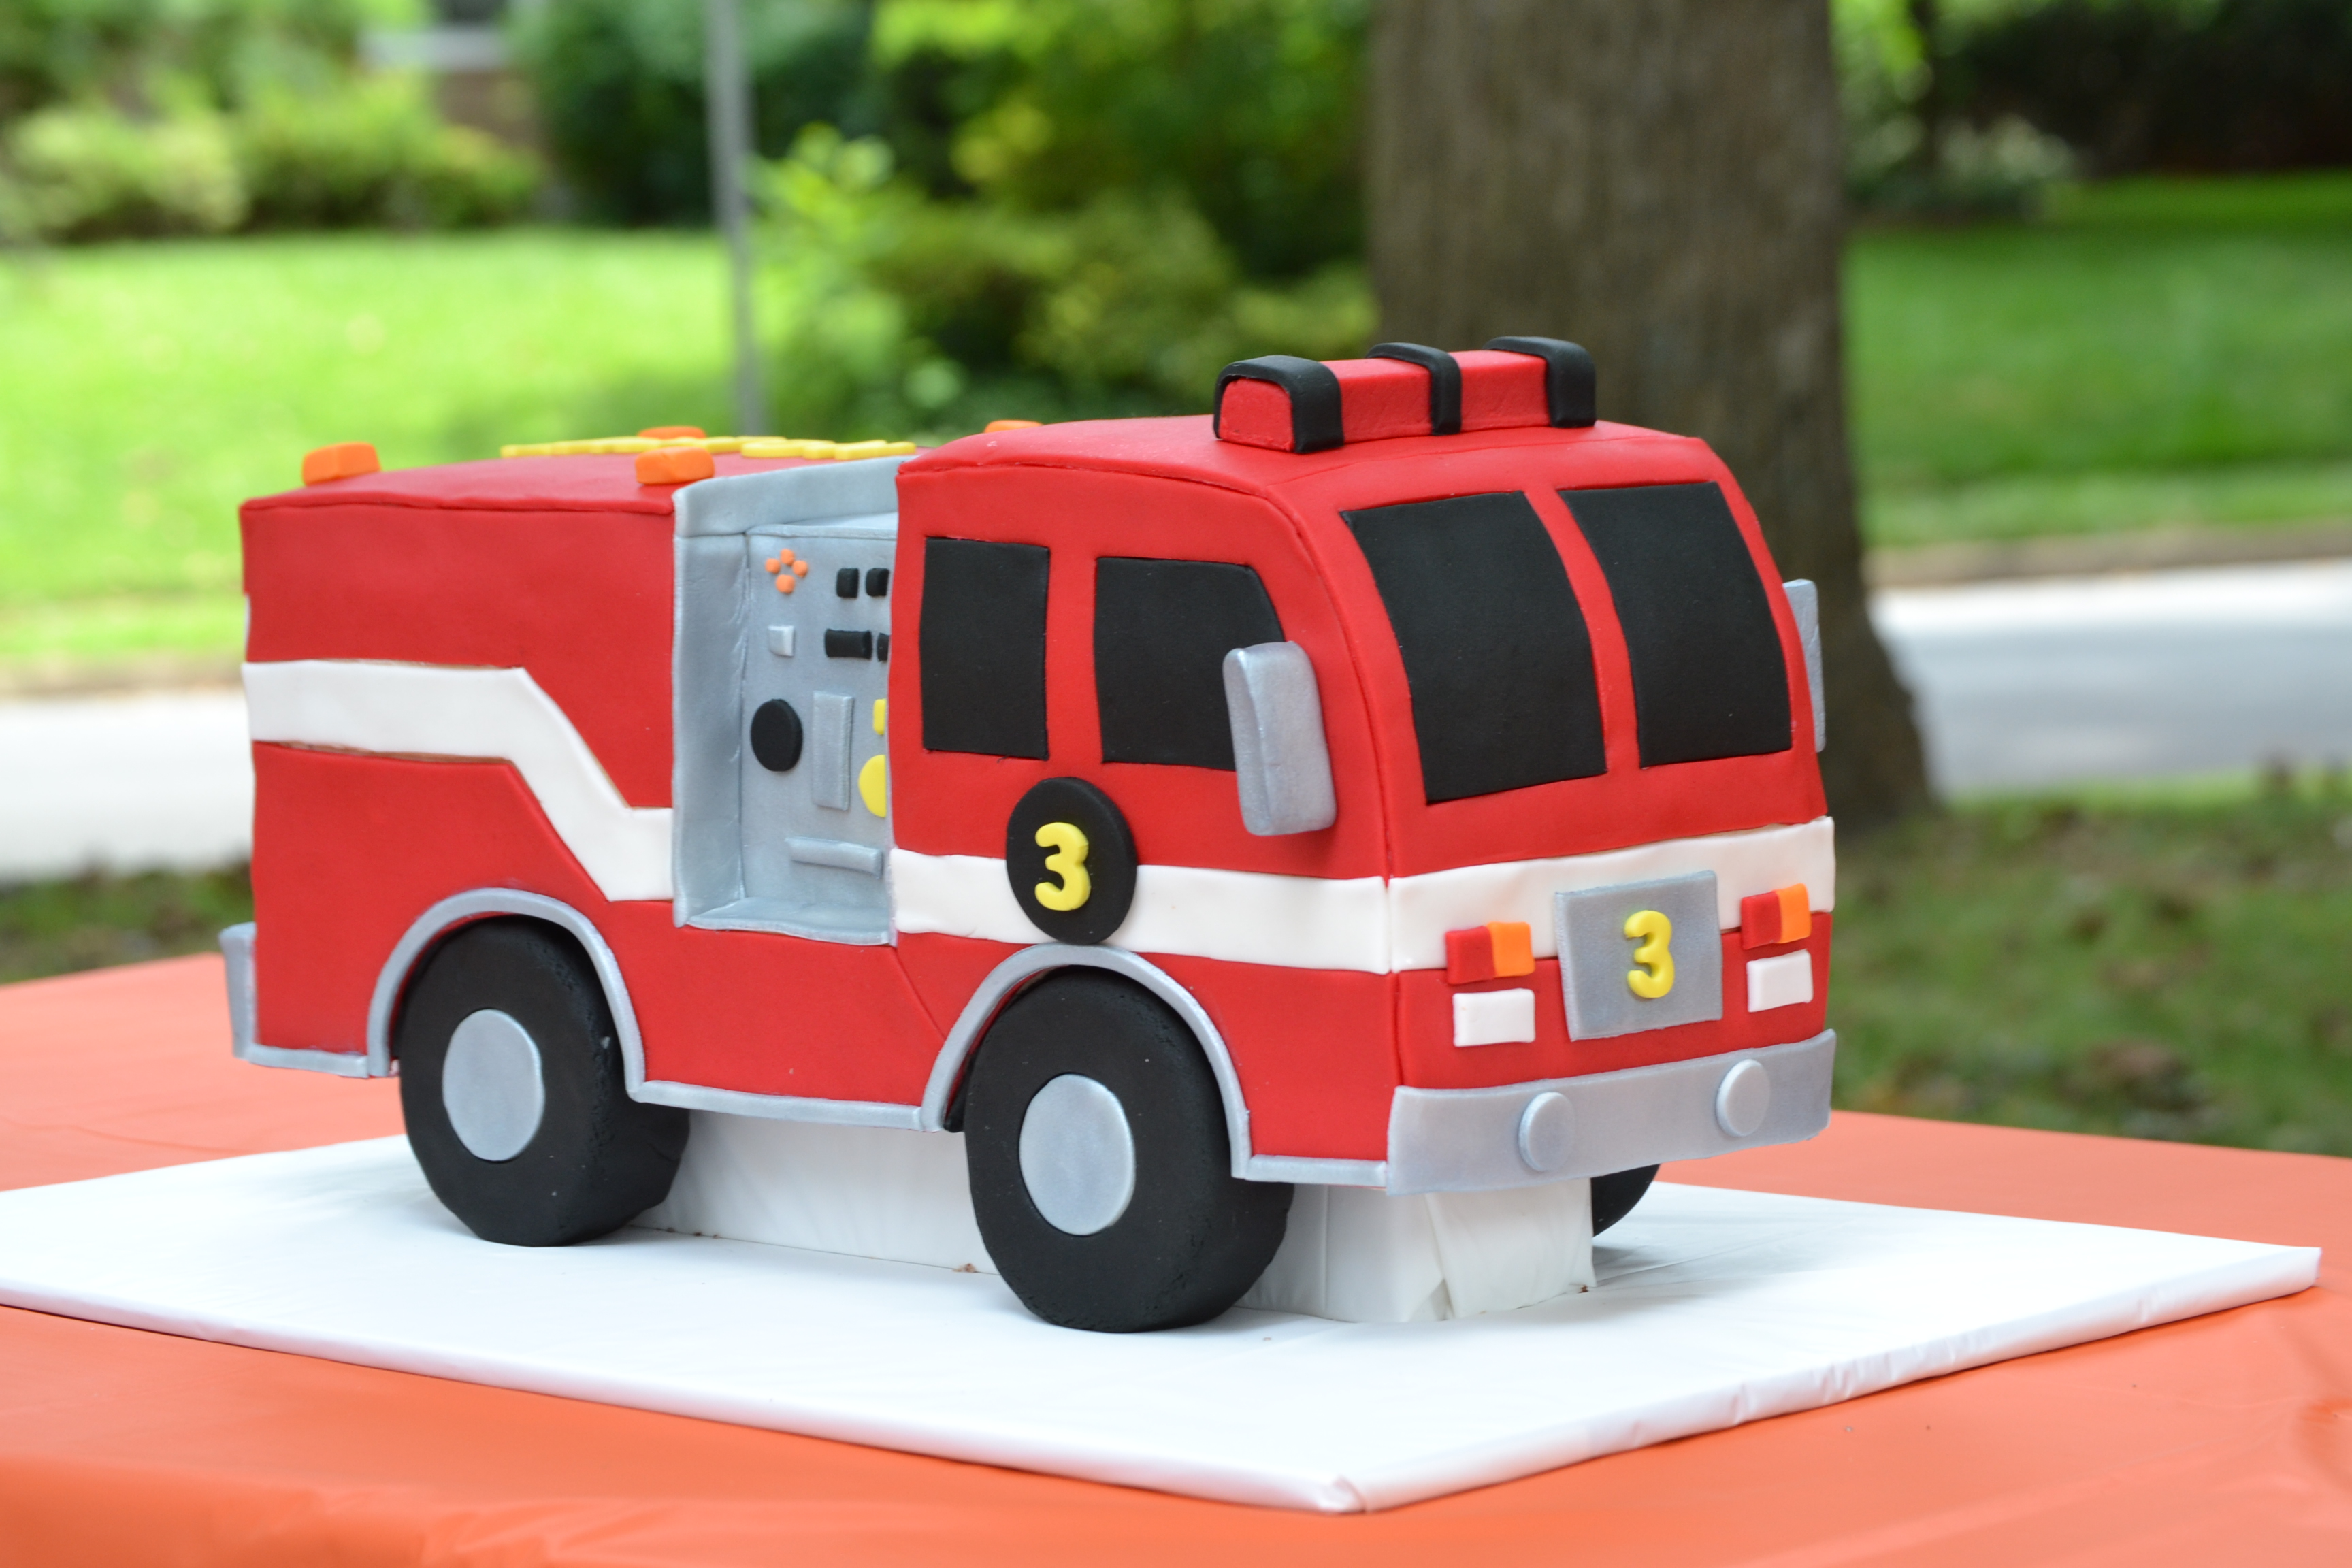 Tremendous Fire Truck Birthday Cake Personalised Birthday Cards Arneslily Jamesorg